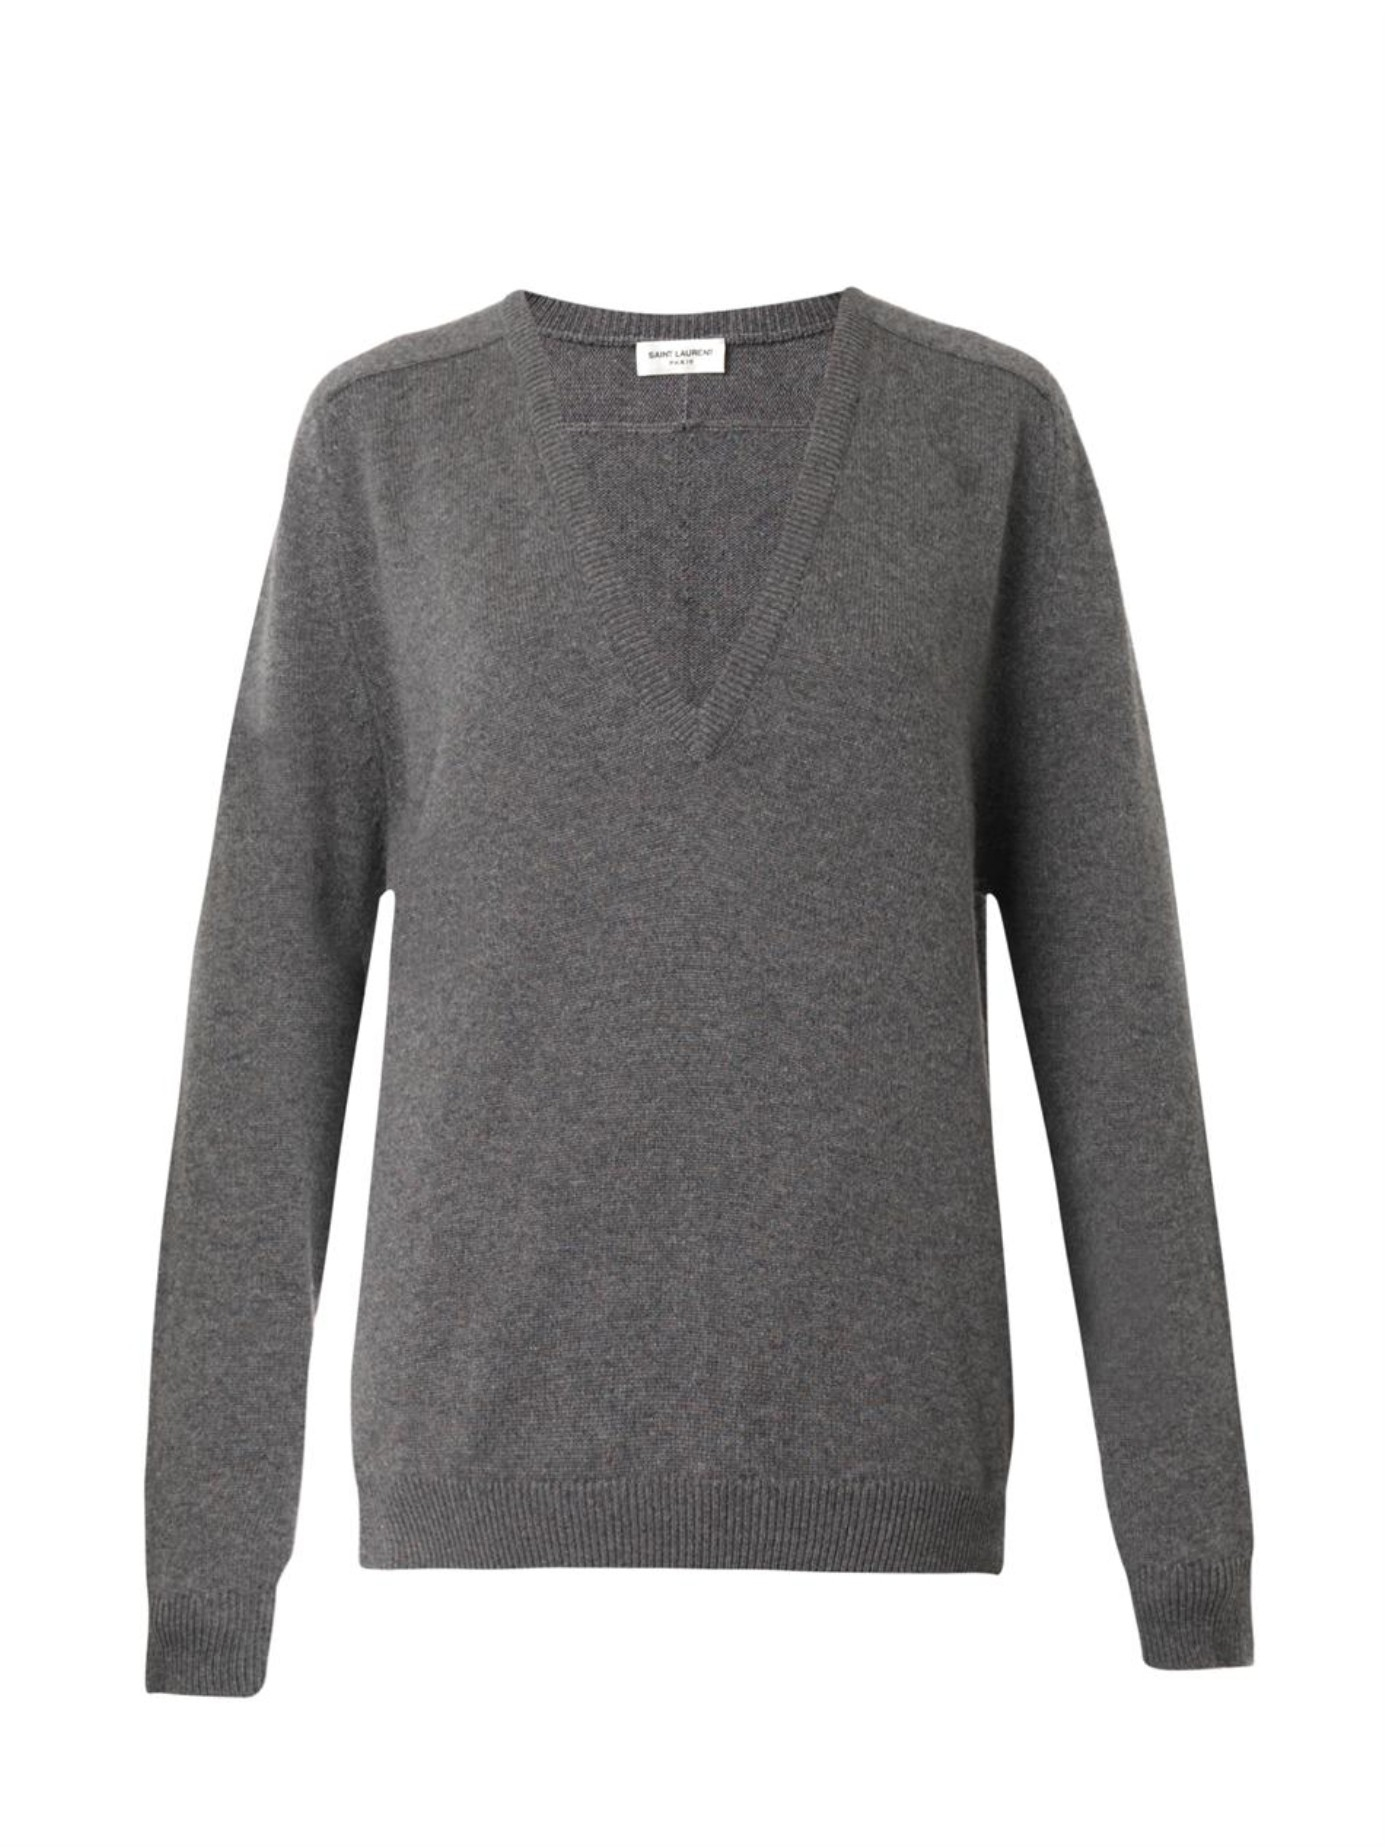 Saint laurent V-neck Cashmere Sweater in Gray | Lyst